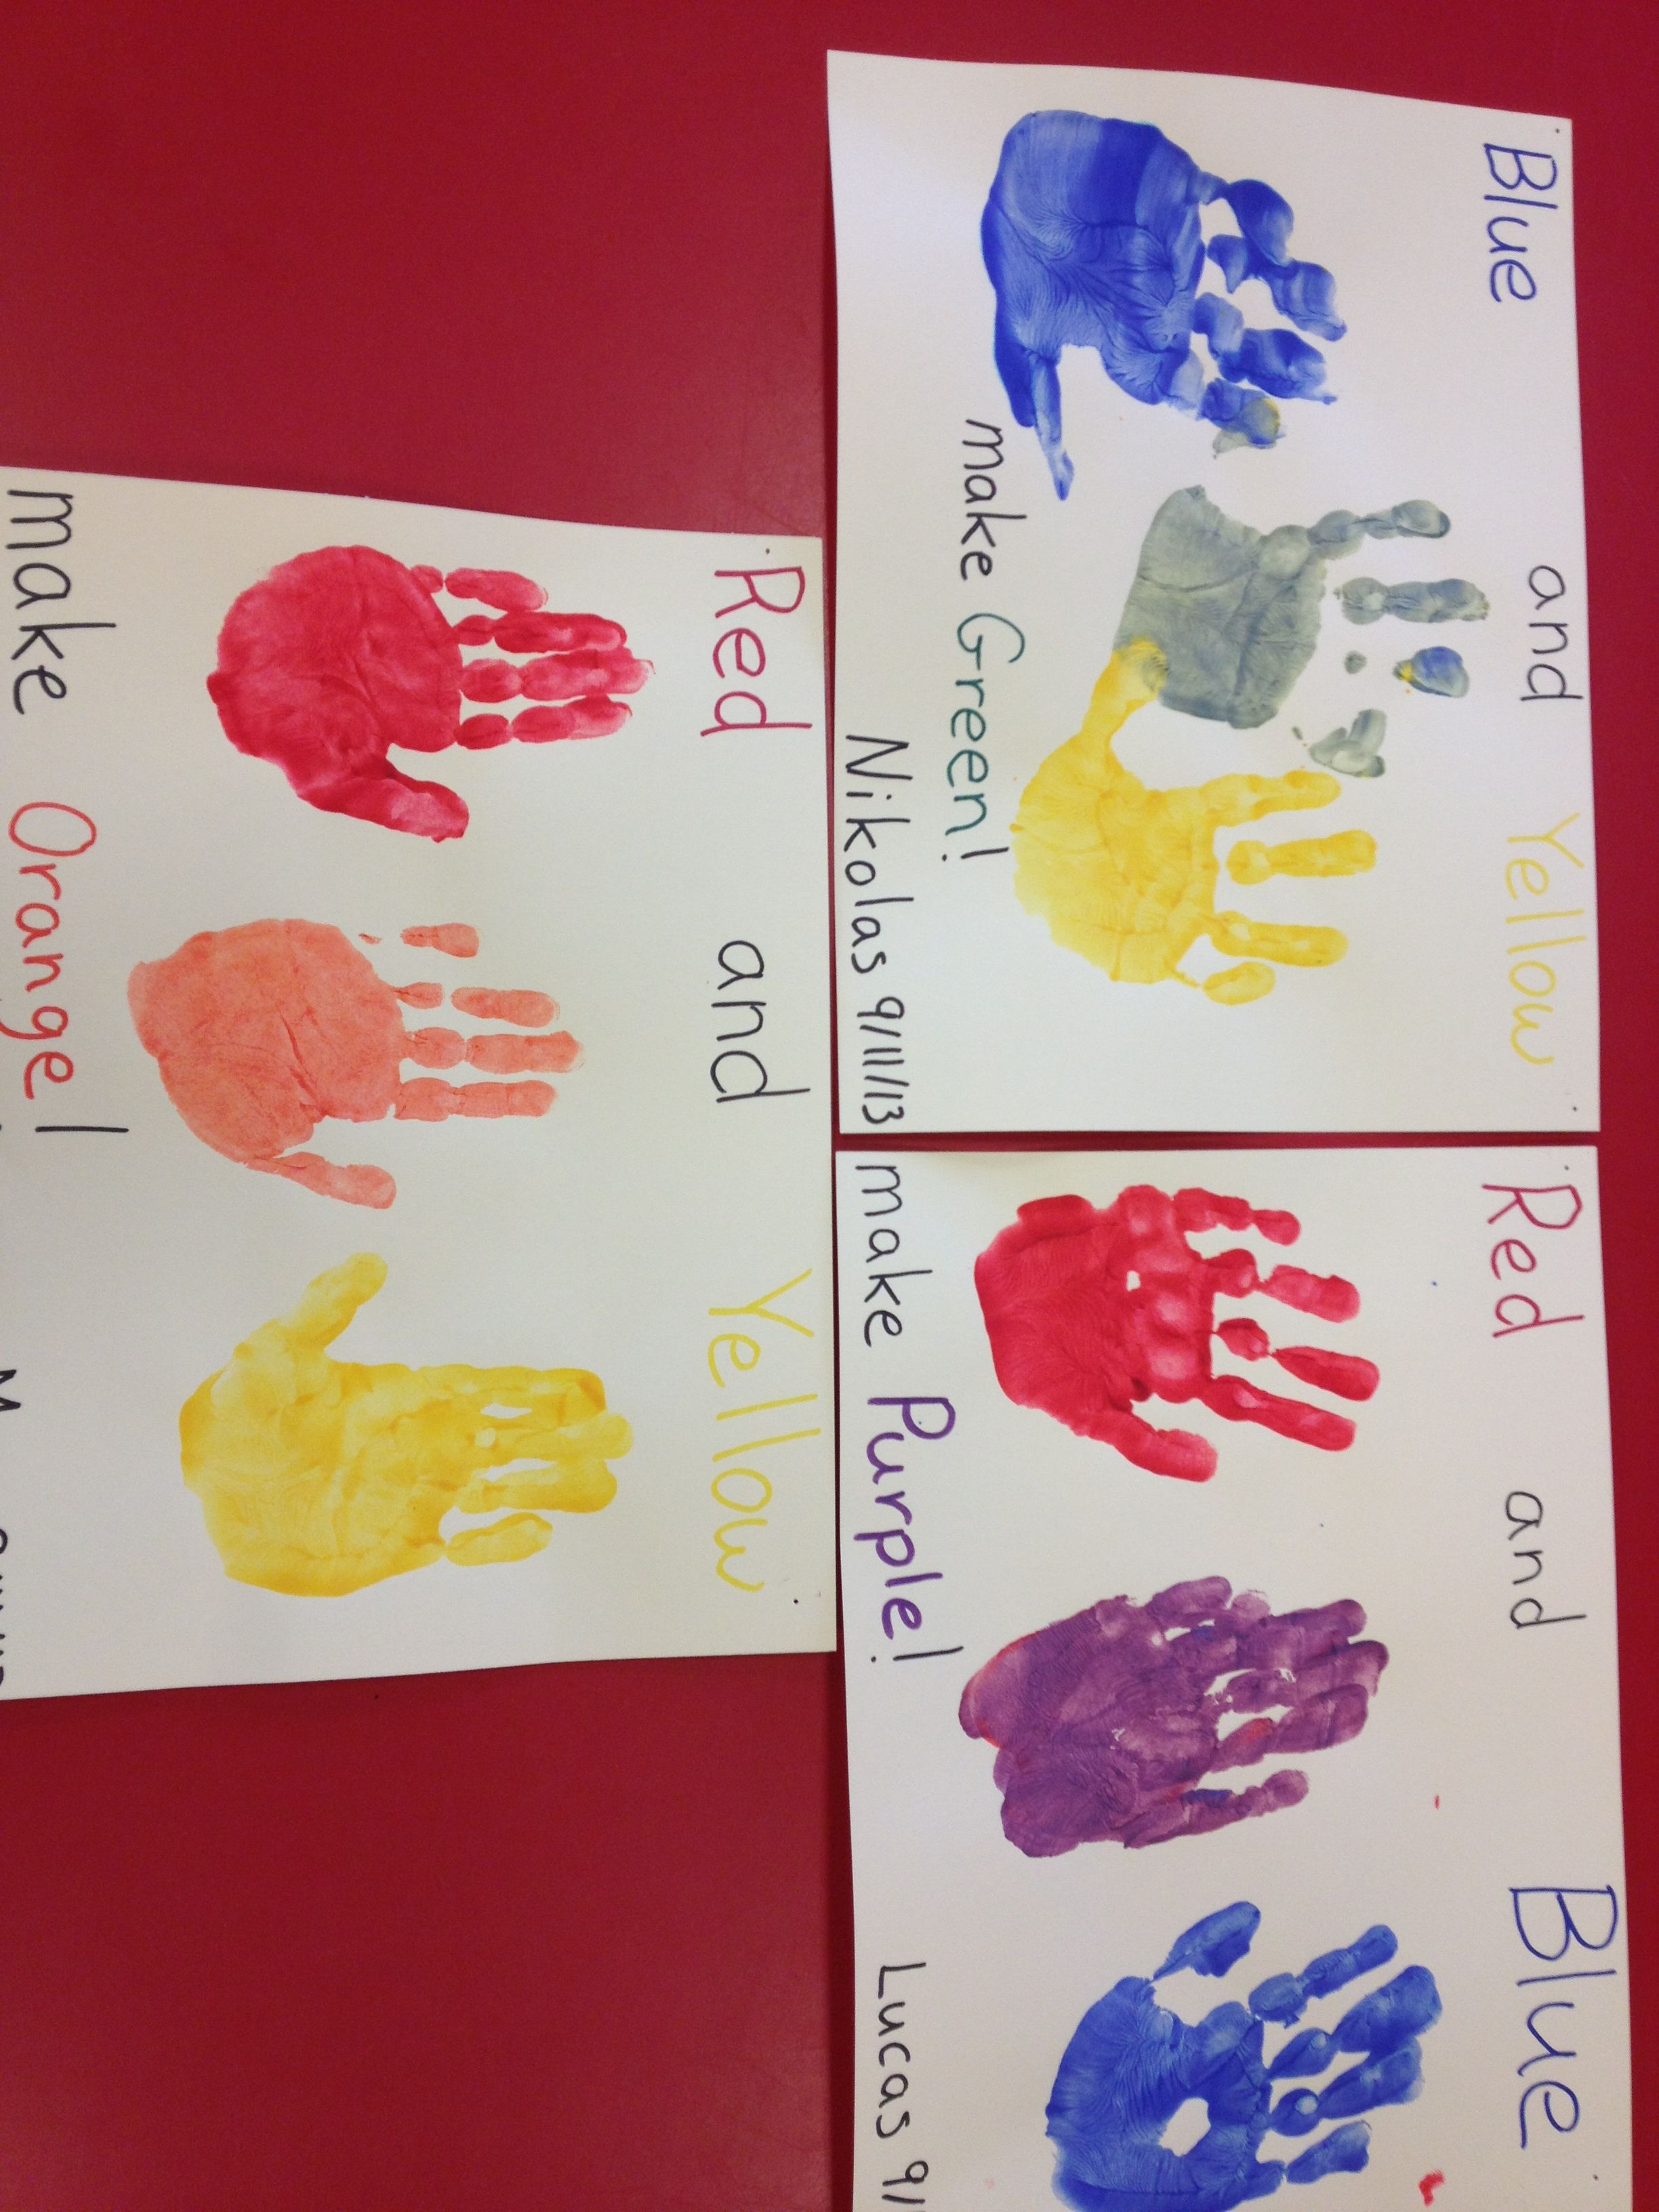 Colors preschool project - Preschool Color Mixing Paint Each Hand A Different Primary Color Then Have The Child Rub